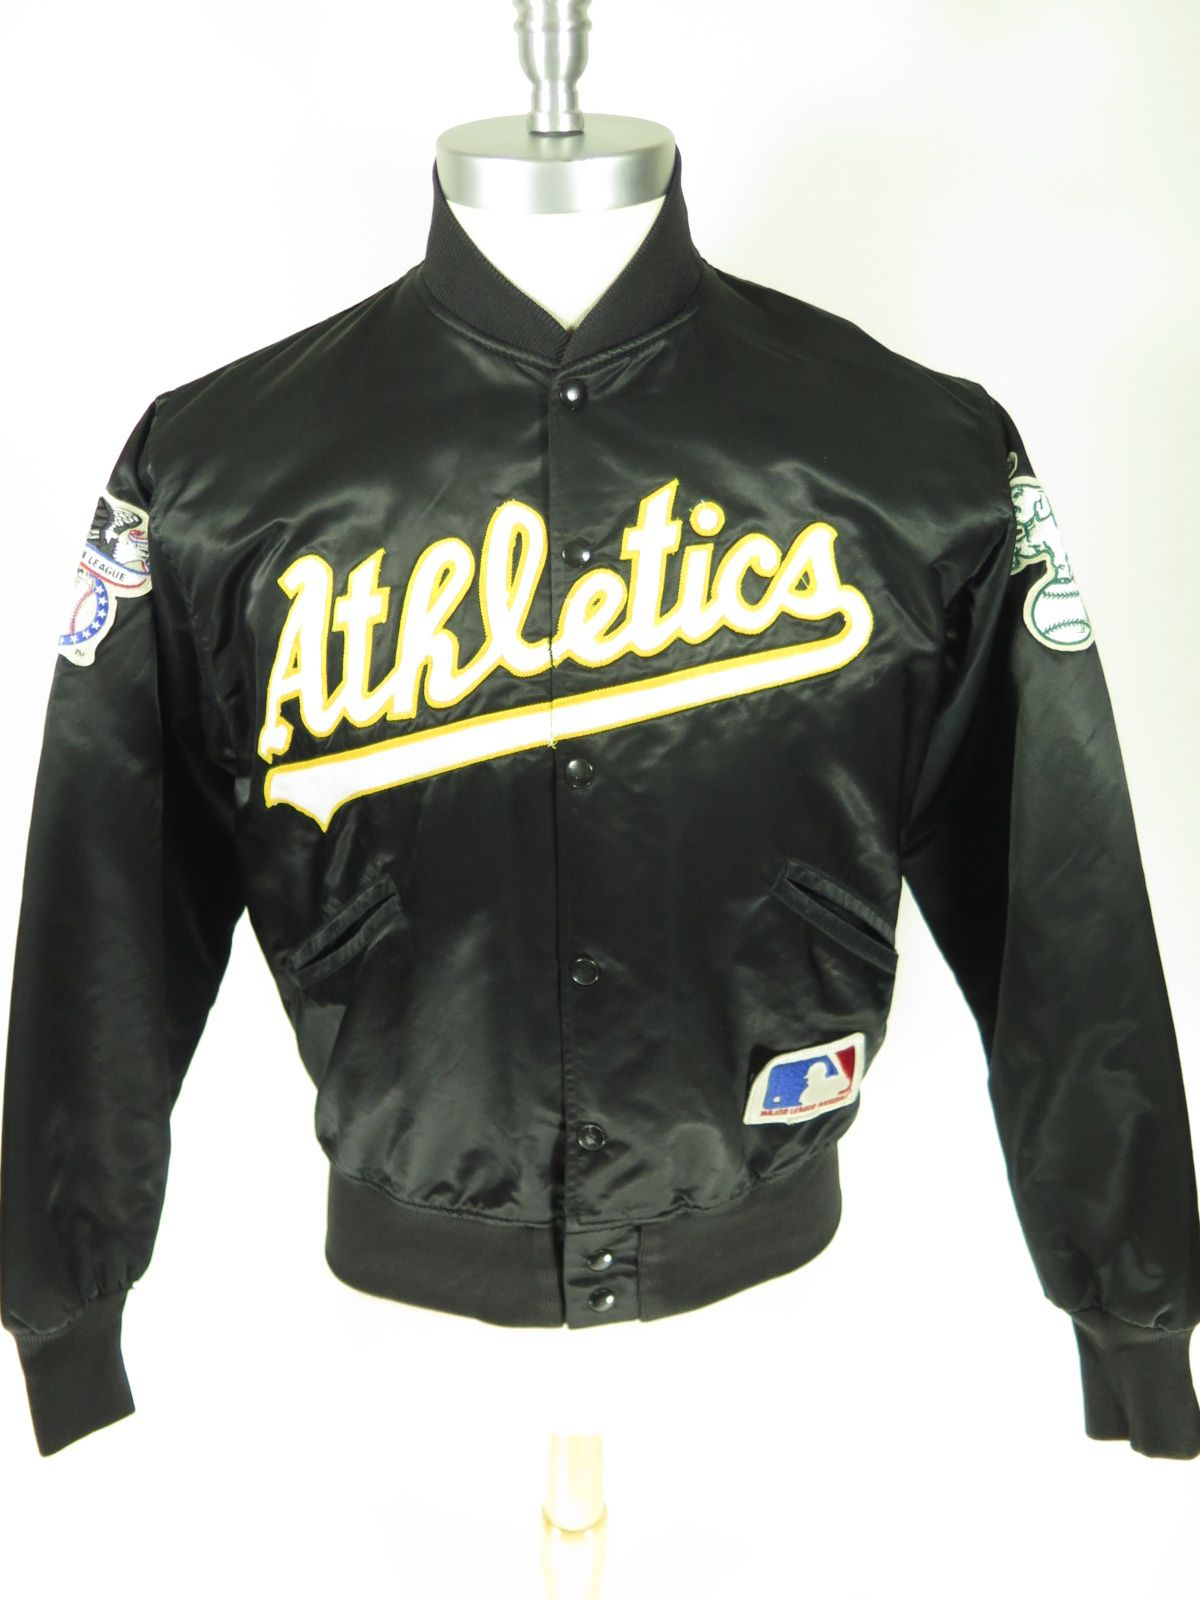 Vintage 70s Felco Athletics American League Mlb Satin Men S Jacket Women Union Made Ie Made By Women For Everyone Find M Vintage Outfits Mens Tops Clothes